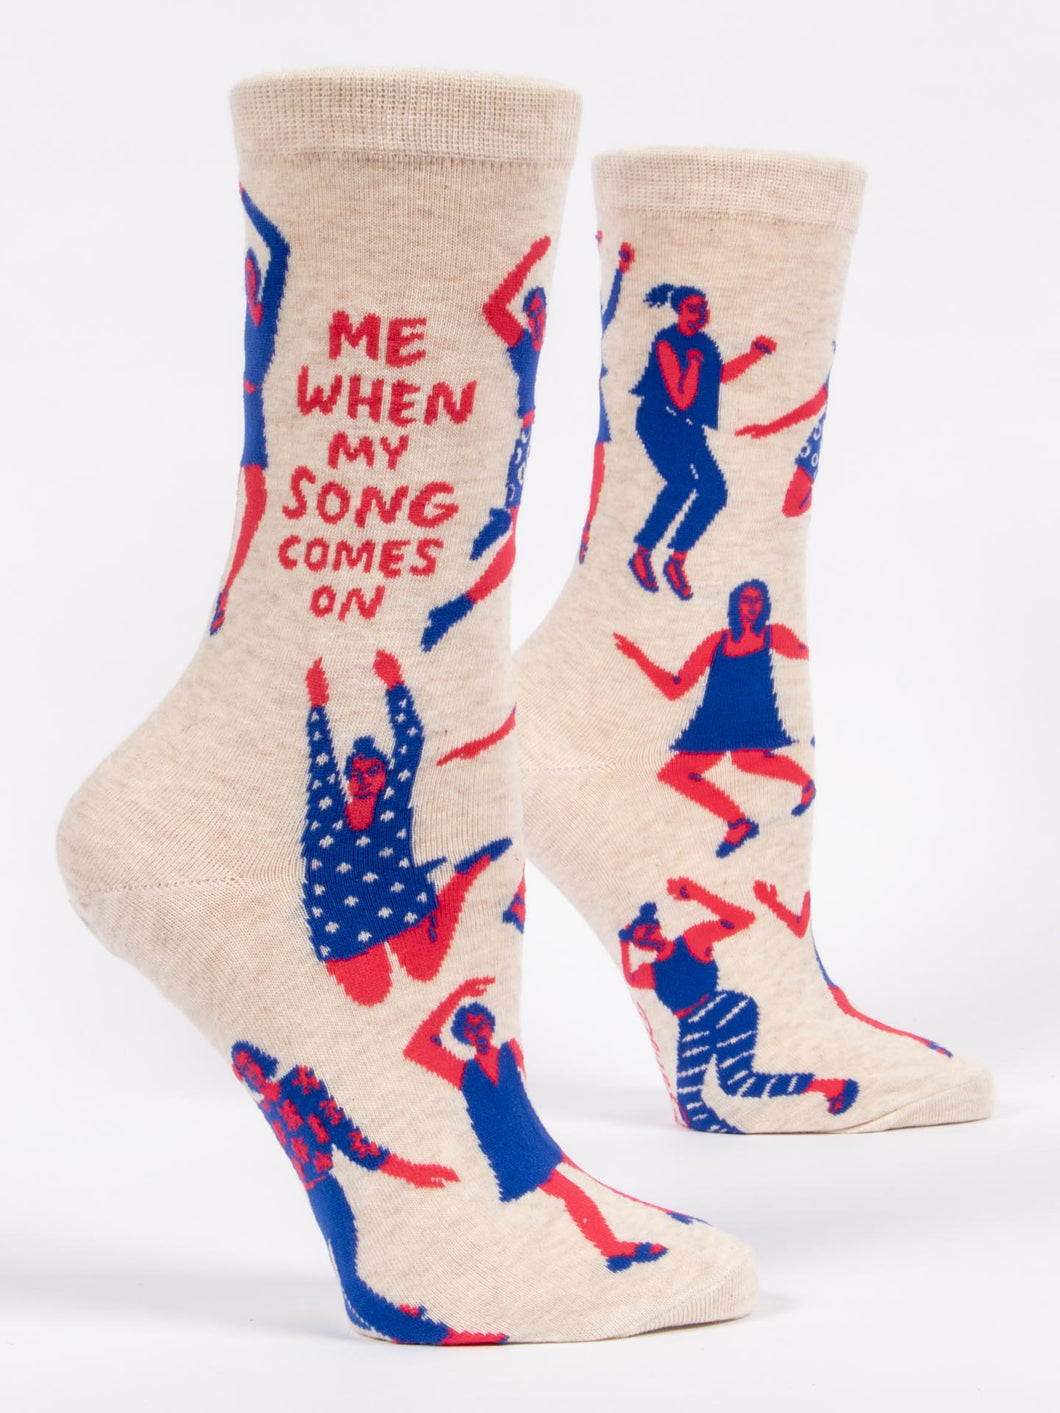 blue q Crew Socks -When My Song Comes